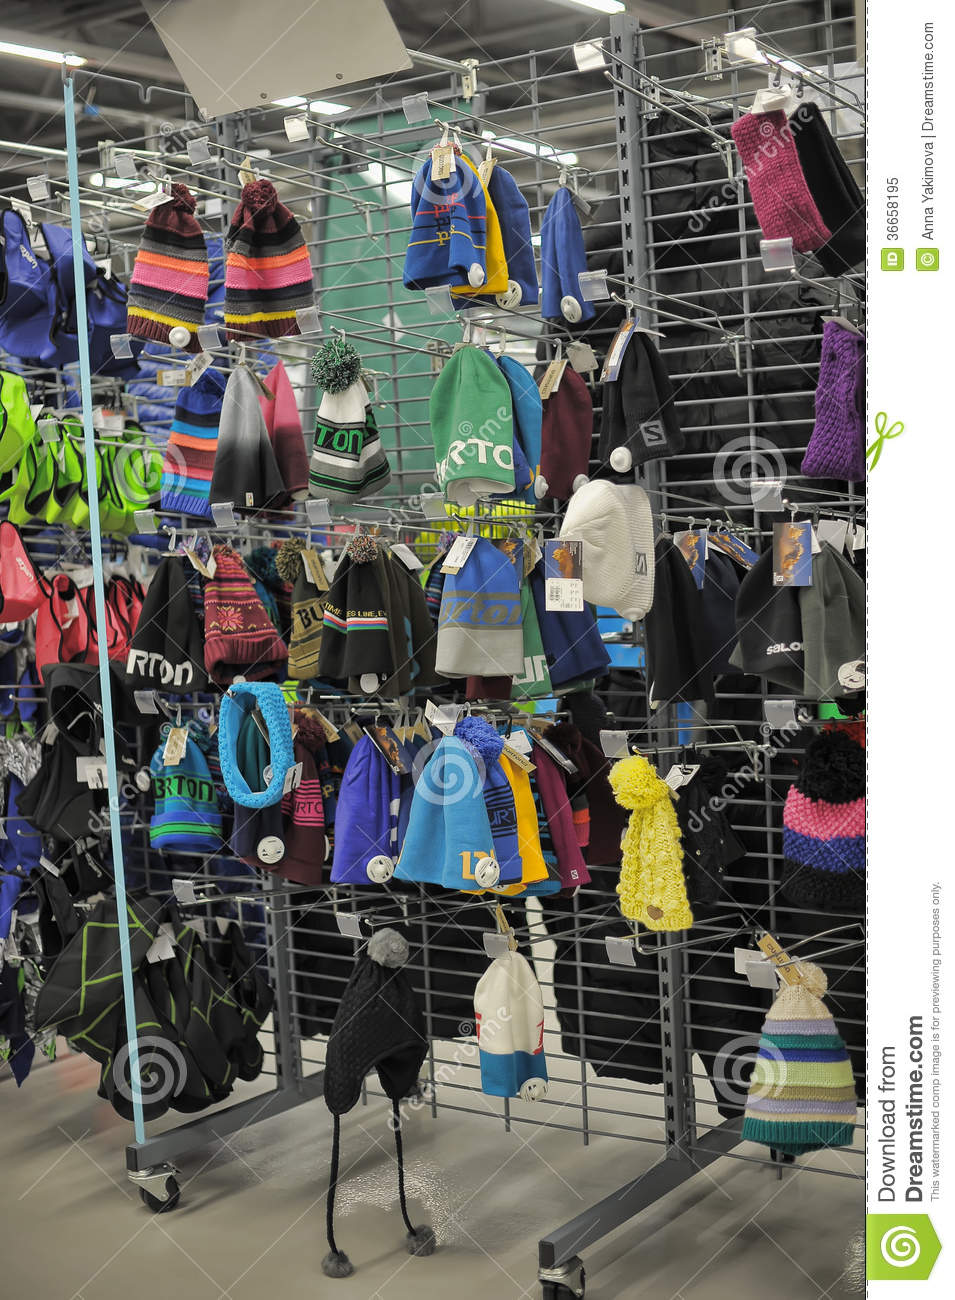 Clothing stores online   Sports team clothing stores